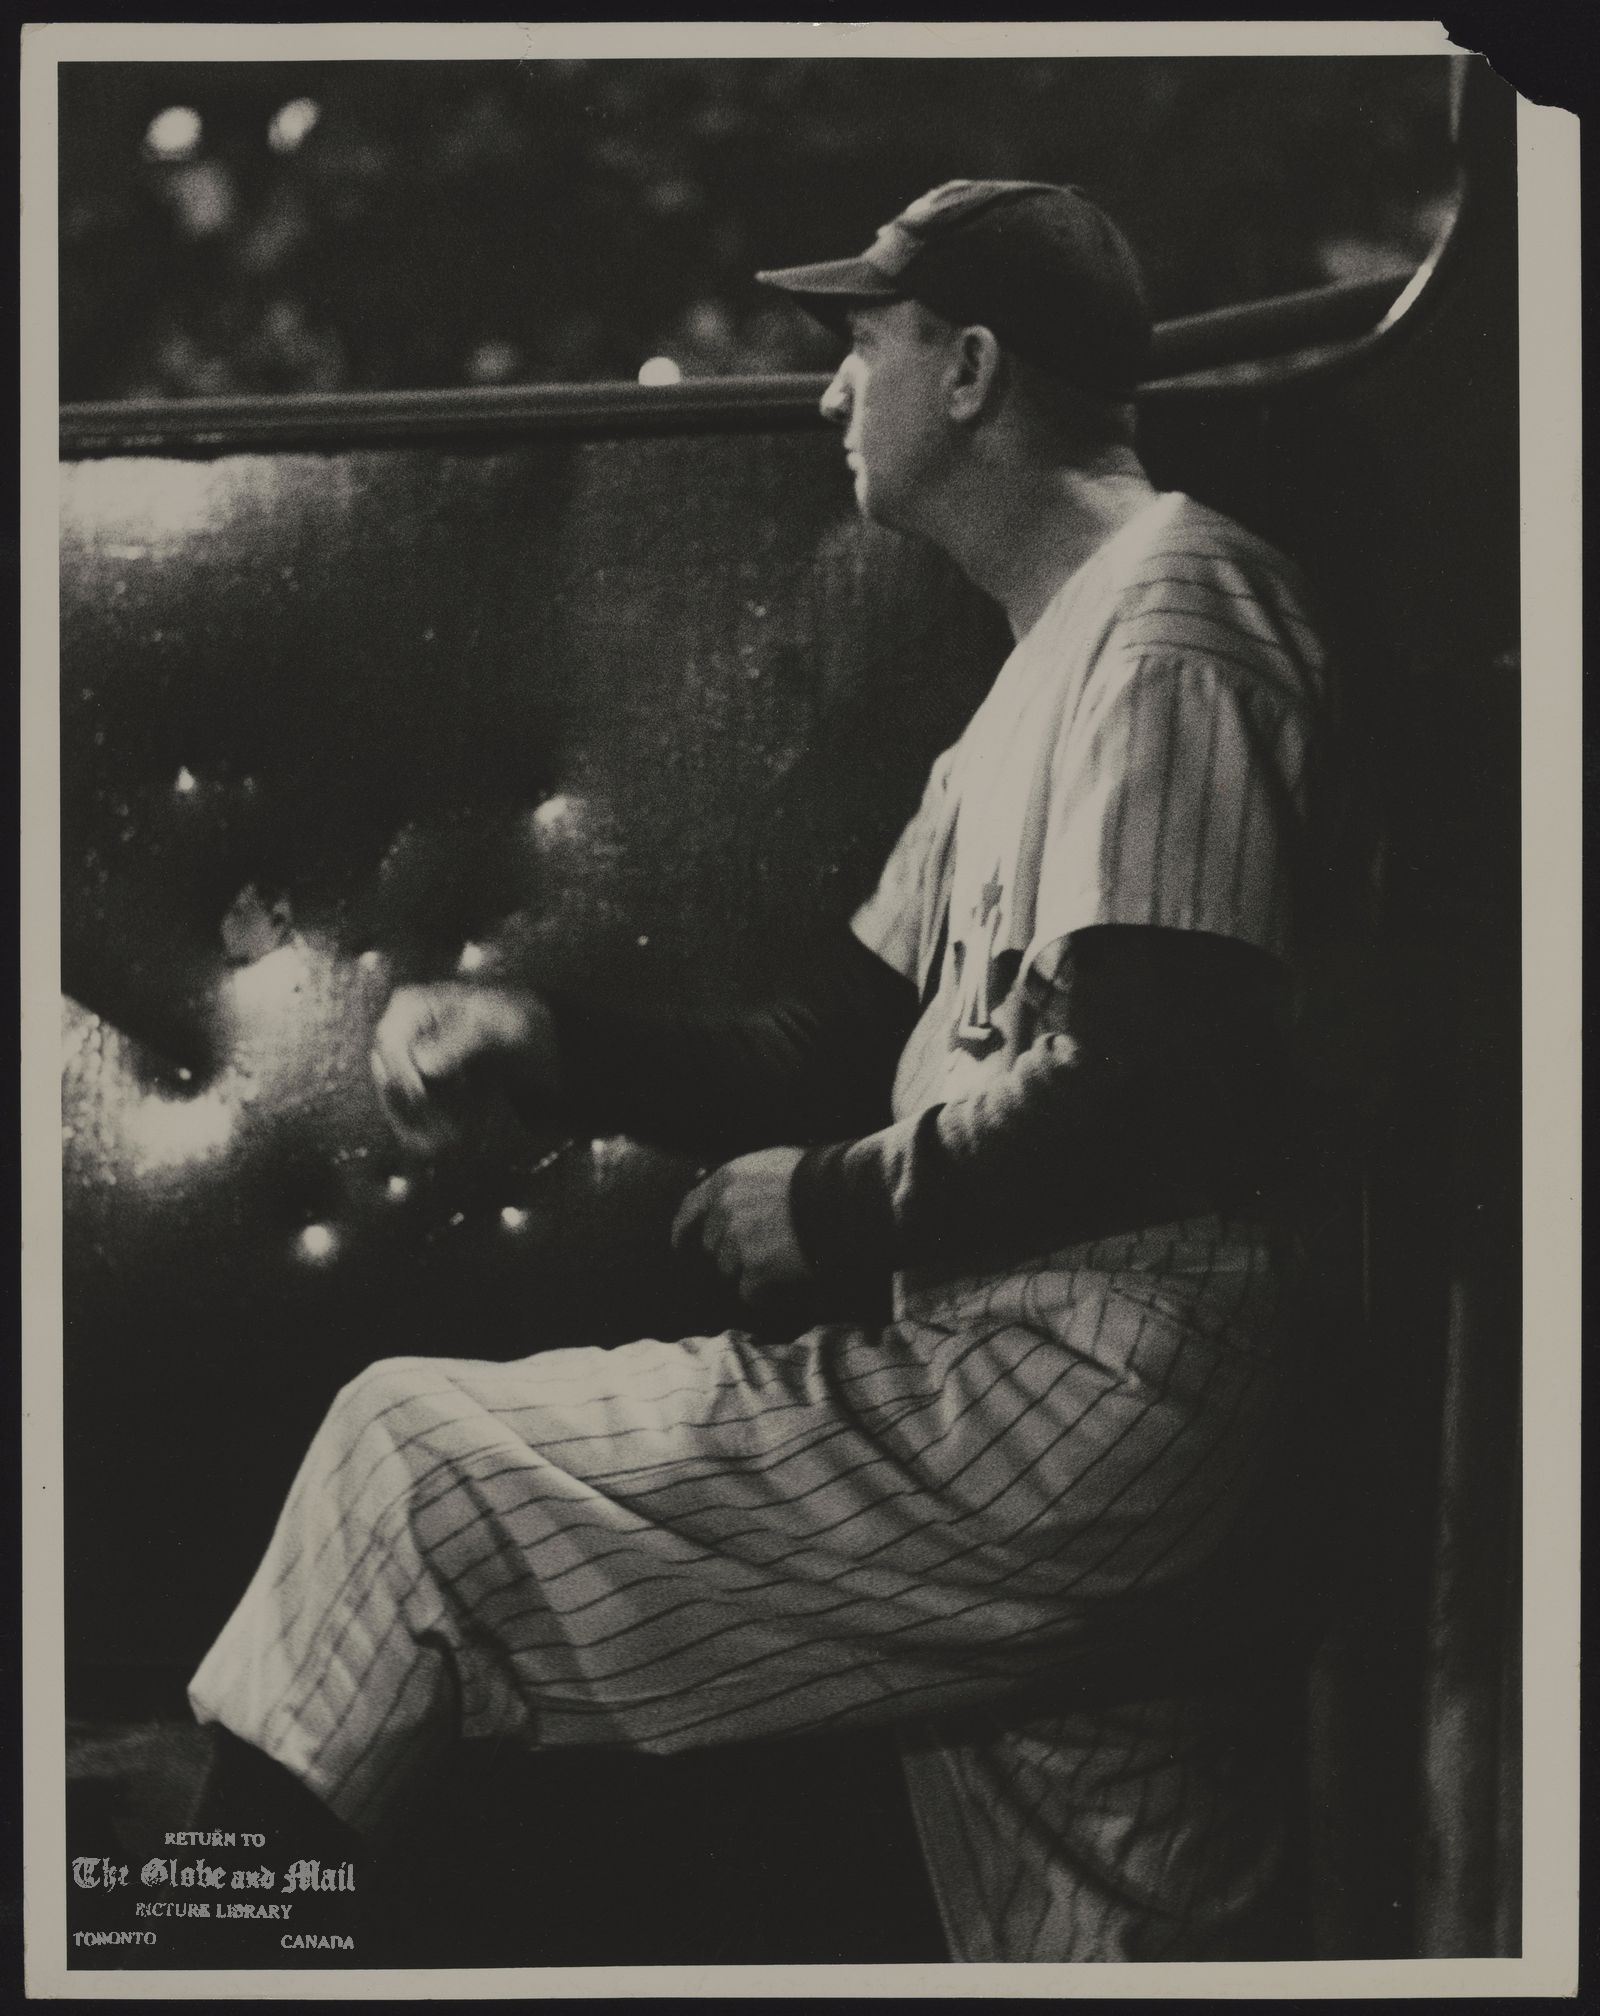 Dixie WALKER [Frederick D. Walker]. Baseball. 1957 From the dugout, Dixie Walker, Toronto Maple Leafs manager and sometime People's Choice of Brooklyn, watches deep drive to the right. [See Globe Magazine article, September 7, 1957]